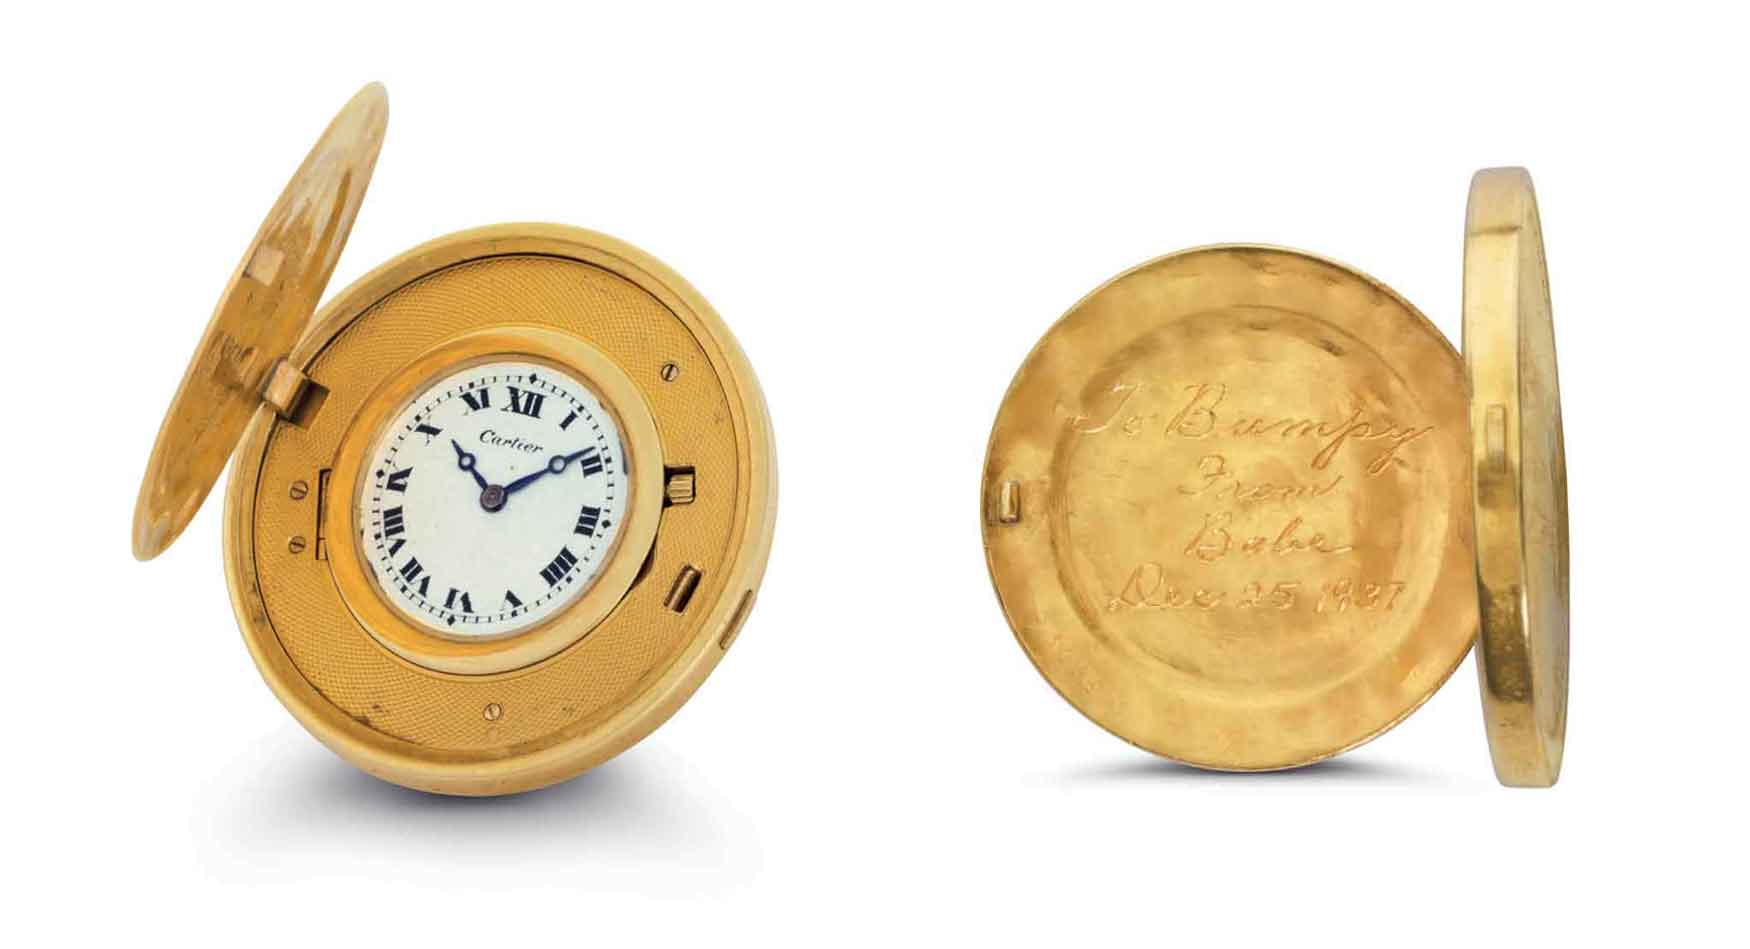 """A fine 18k gold Twenty Dollar coin watch by Cartier, given from American baseball legend Babe Ruth to his friend and well-known New York gangster """"Bumpy Johnson."""" Estimate: $50,000-100,000"""